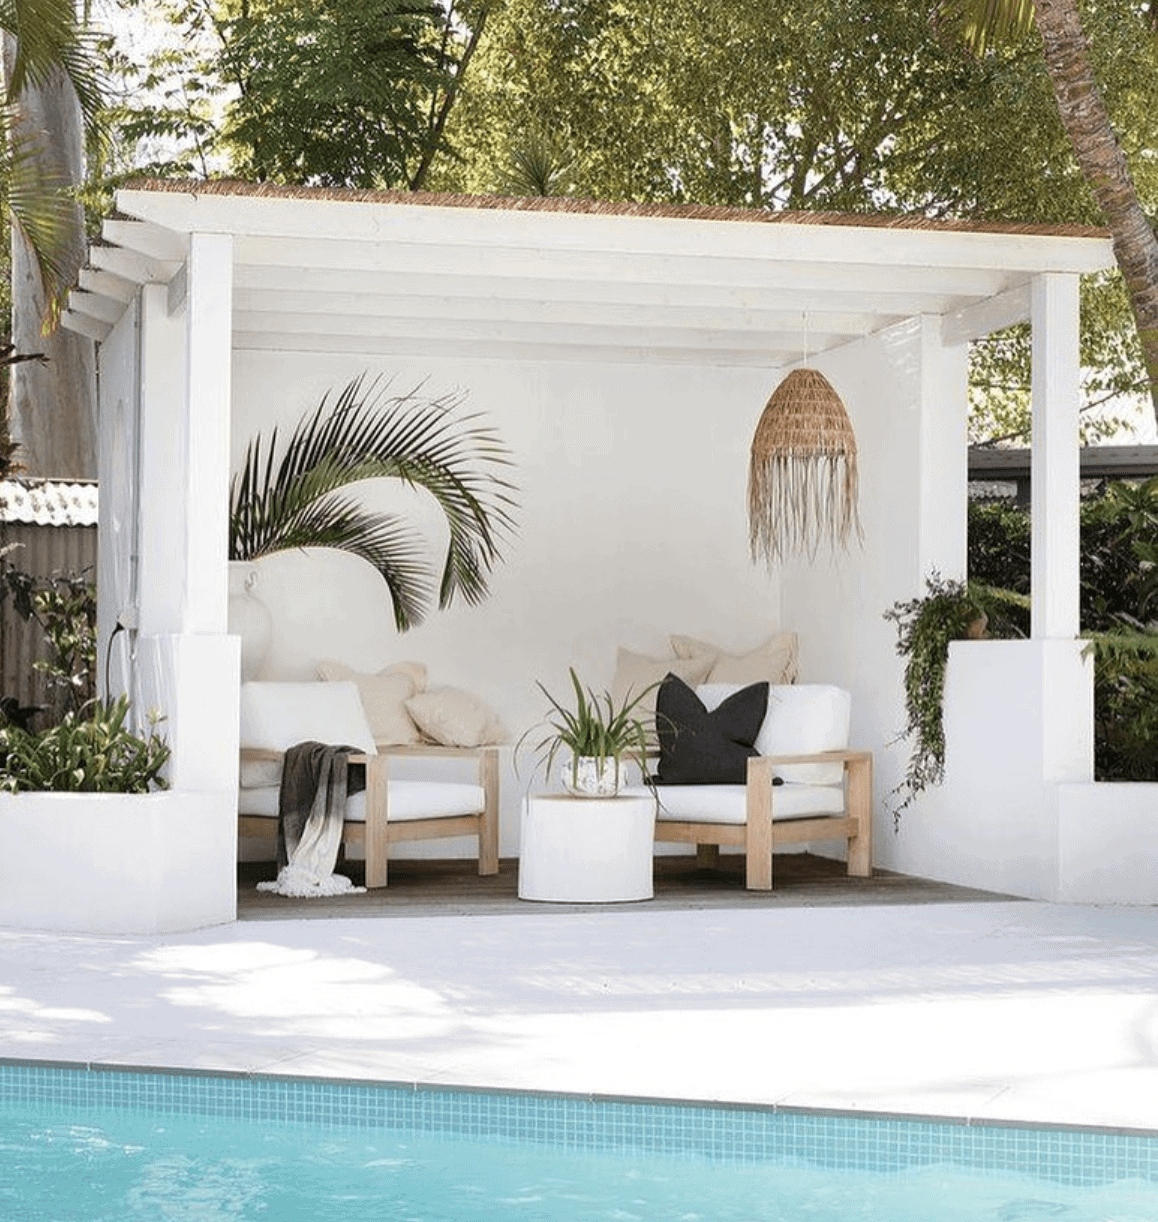 tropical plants and rattan pendant light in a white pool cabana